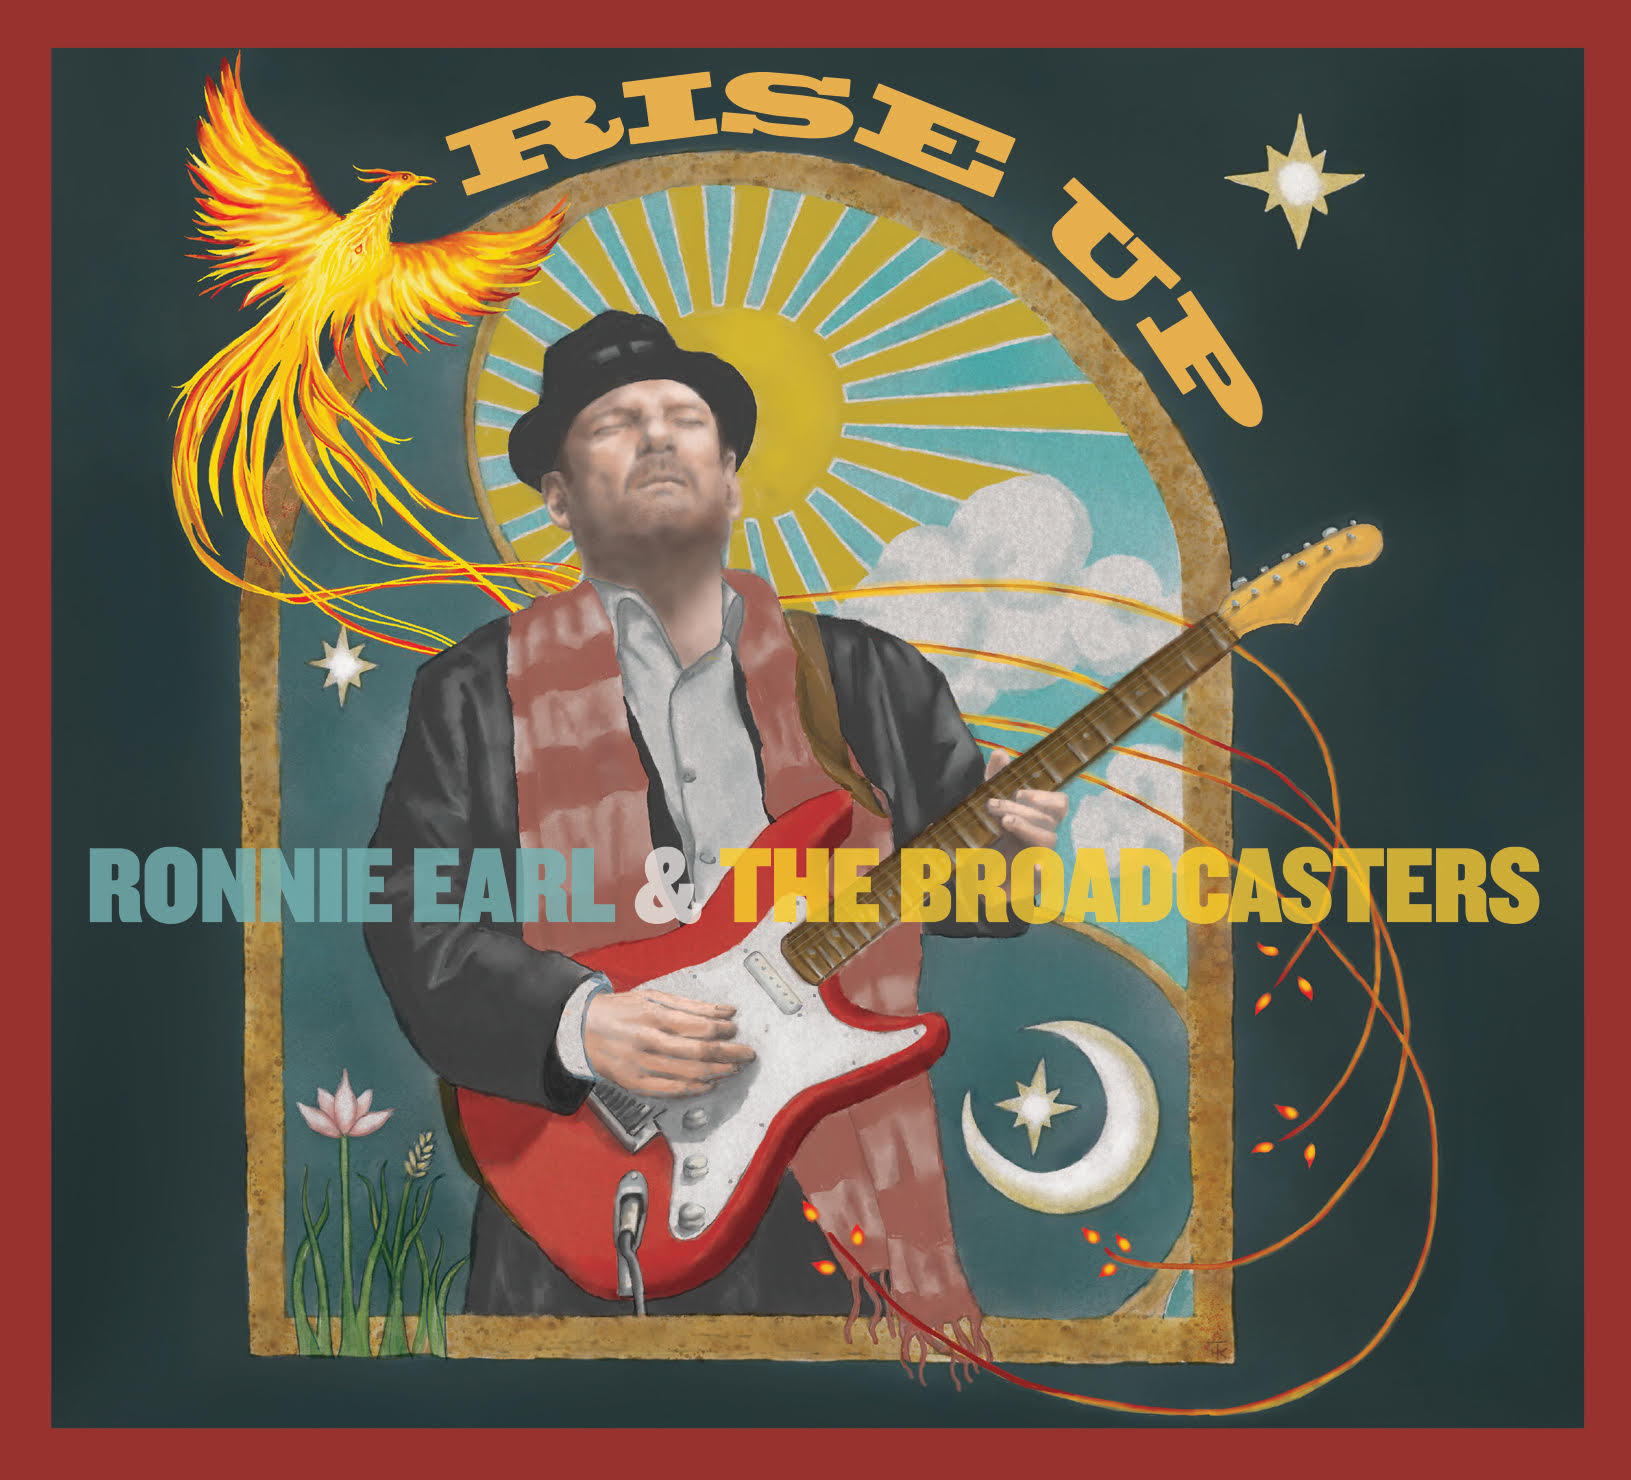 Rise Up with music from Ronnie Earl Today